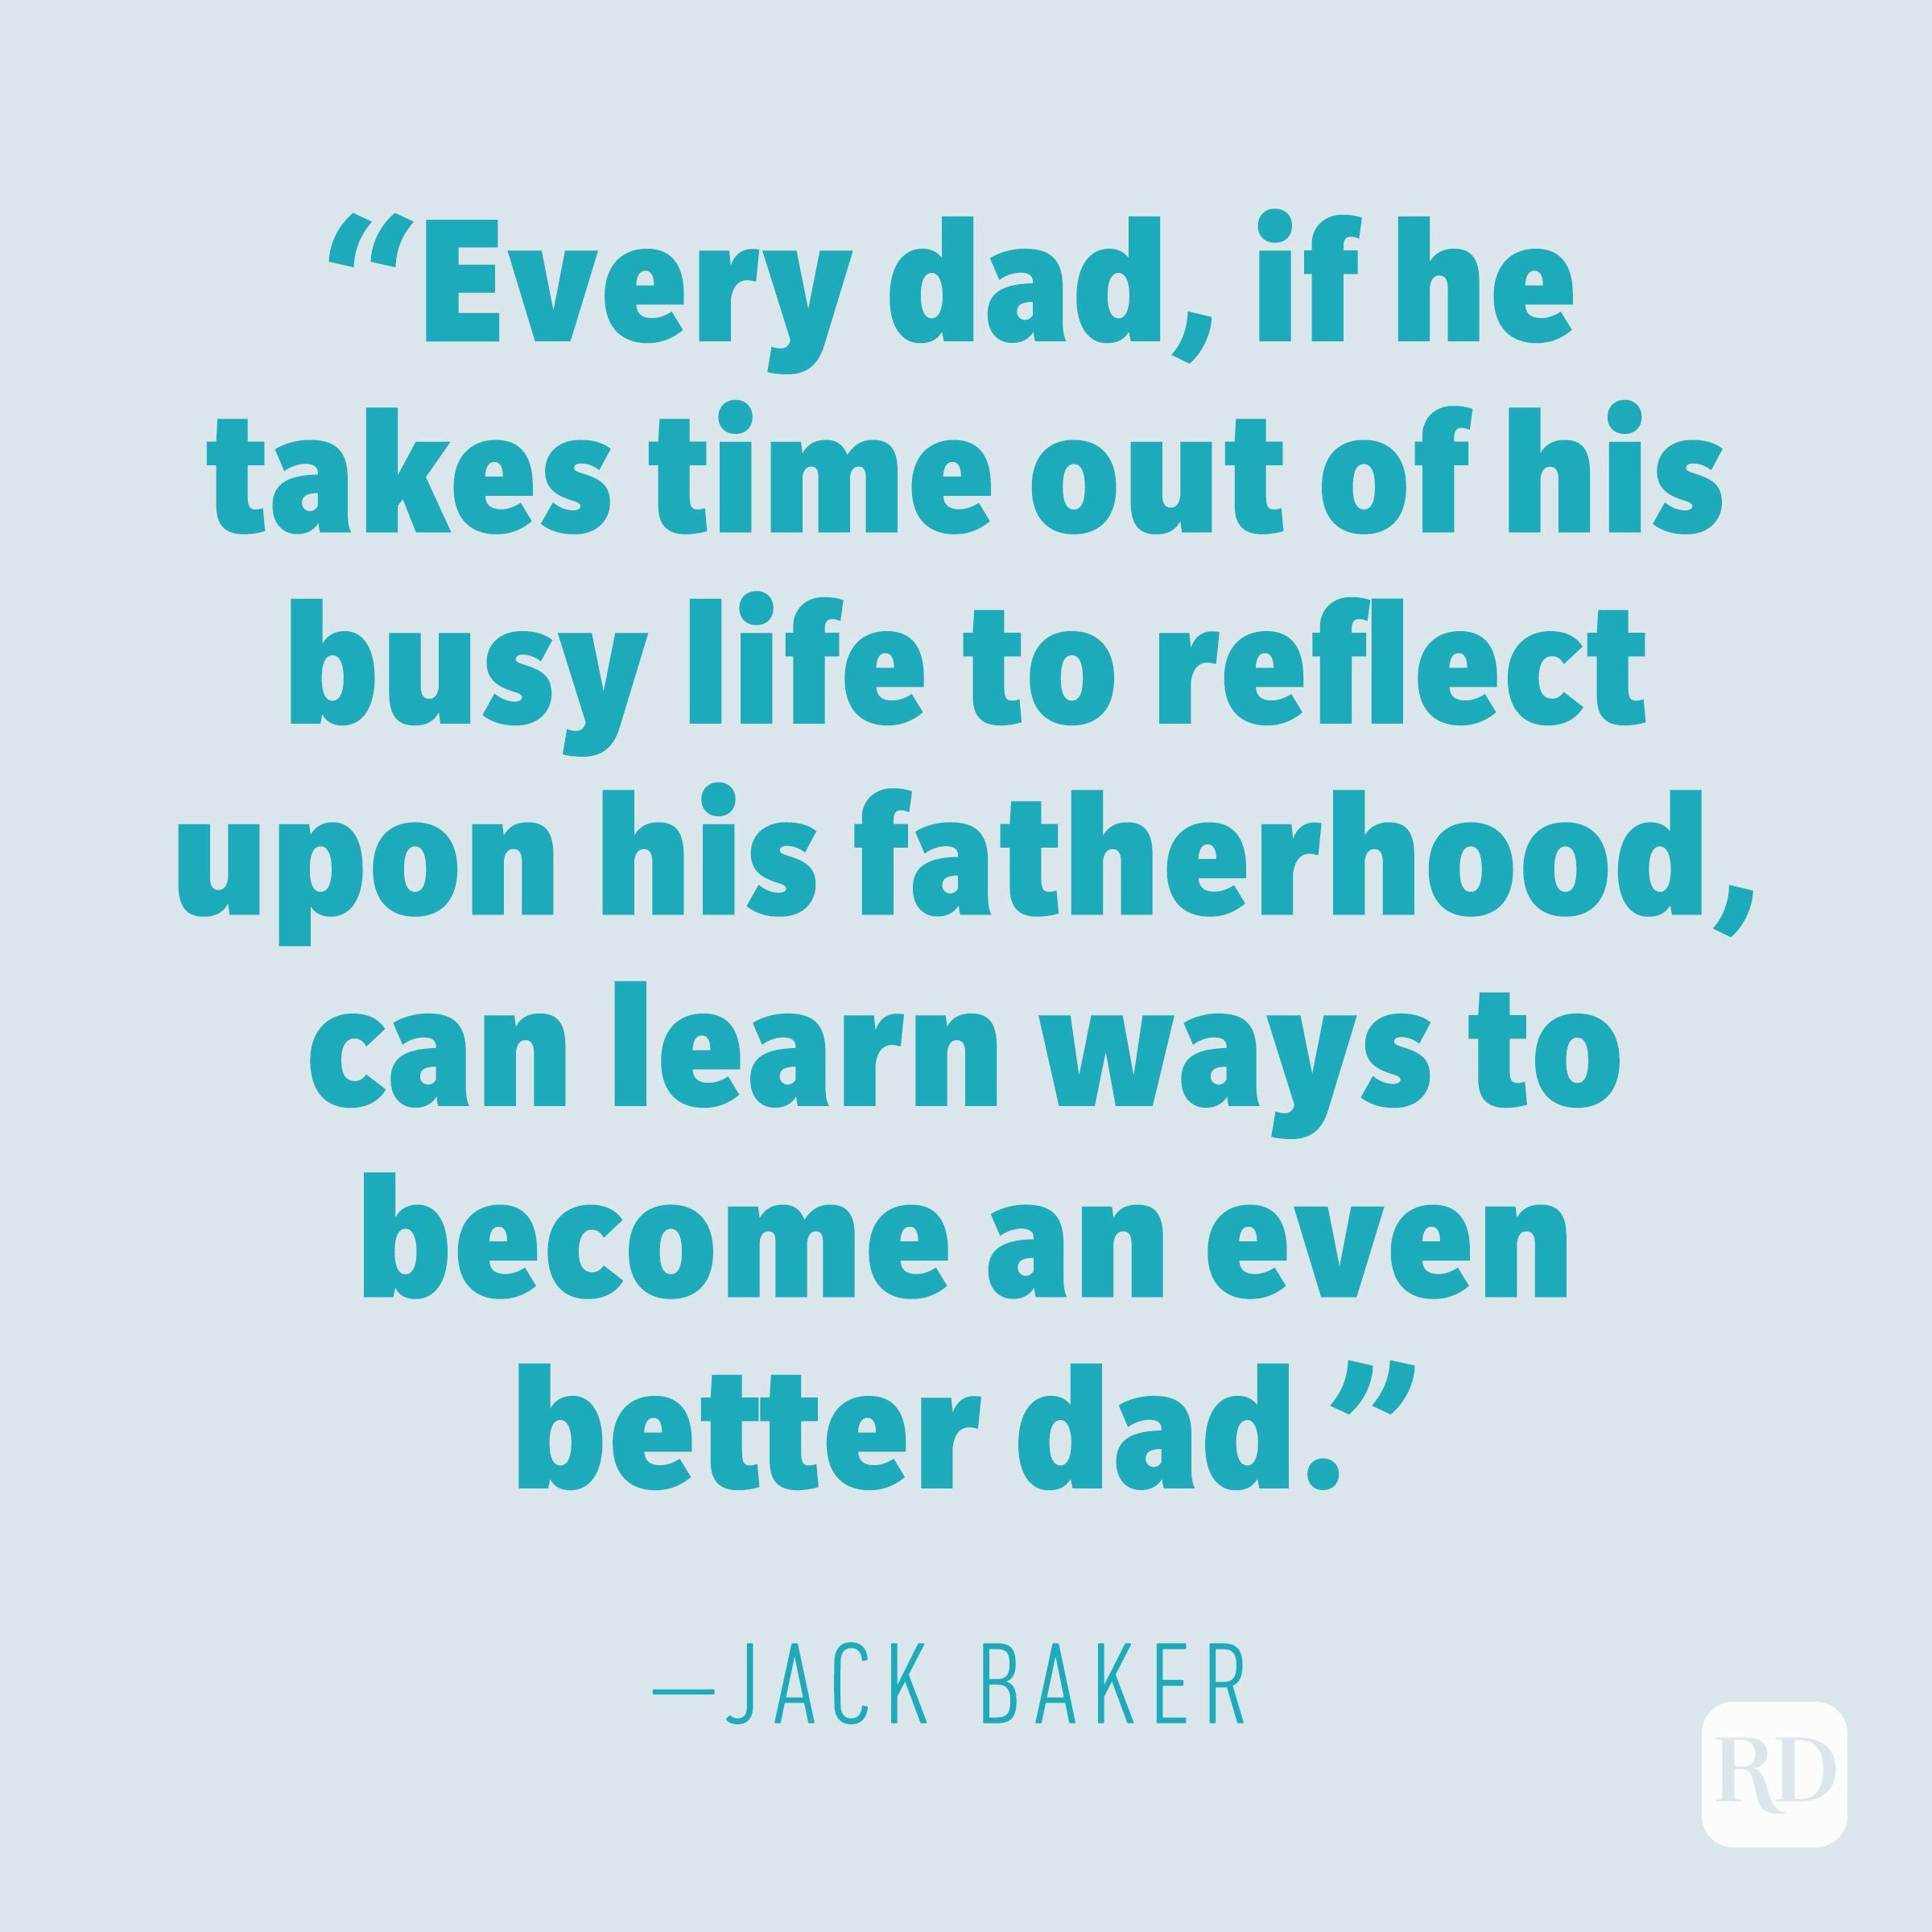 """Every dad, if he takes time out of his busy life to reflect upon his fatherhood, can learn ways to become an even better dad."" —JACK BAKER"